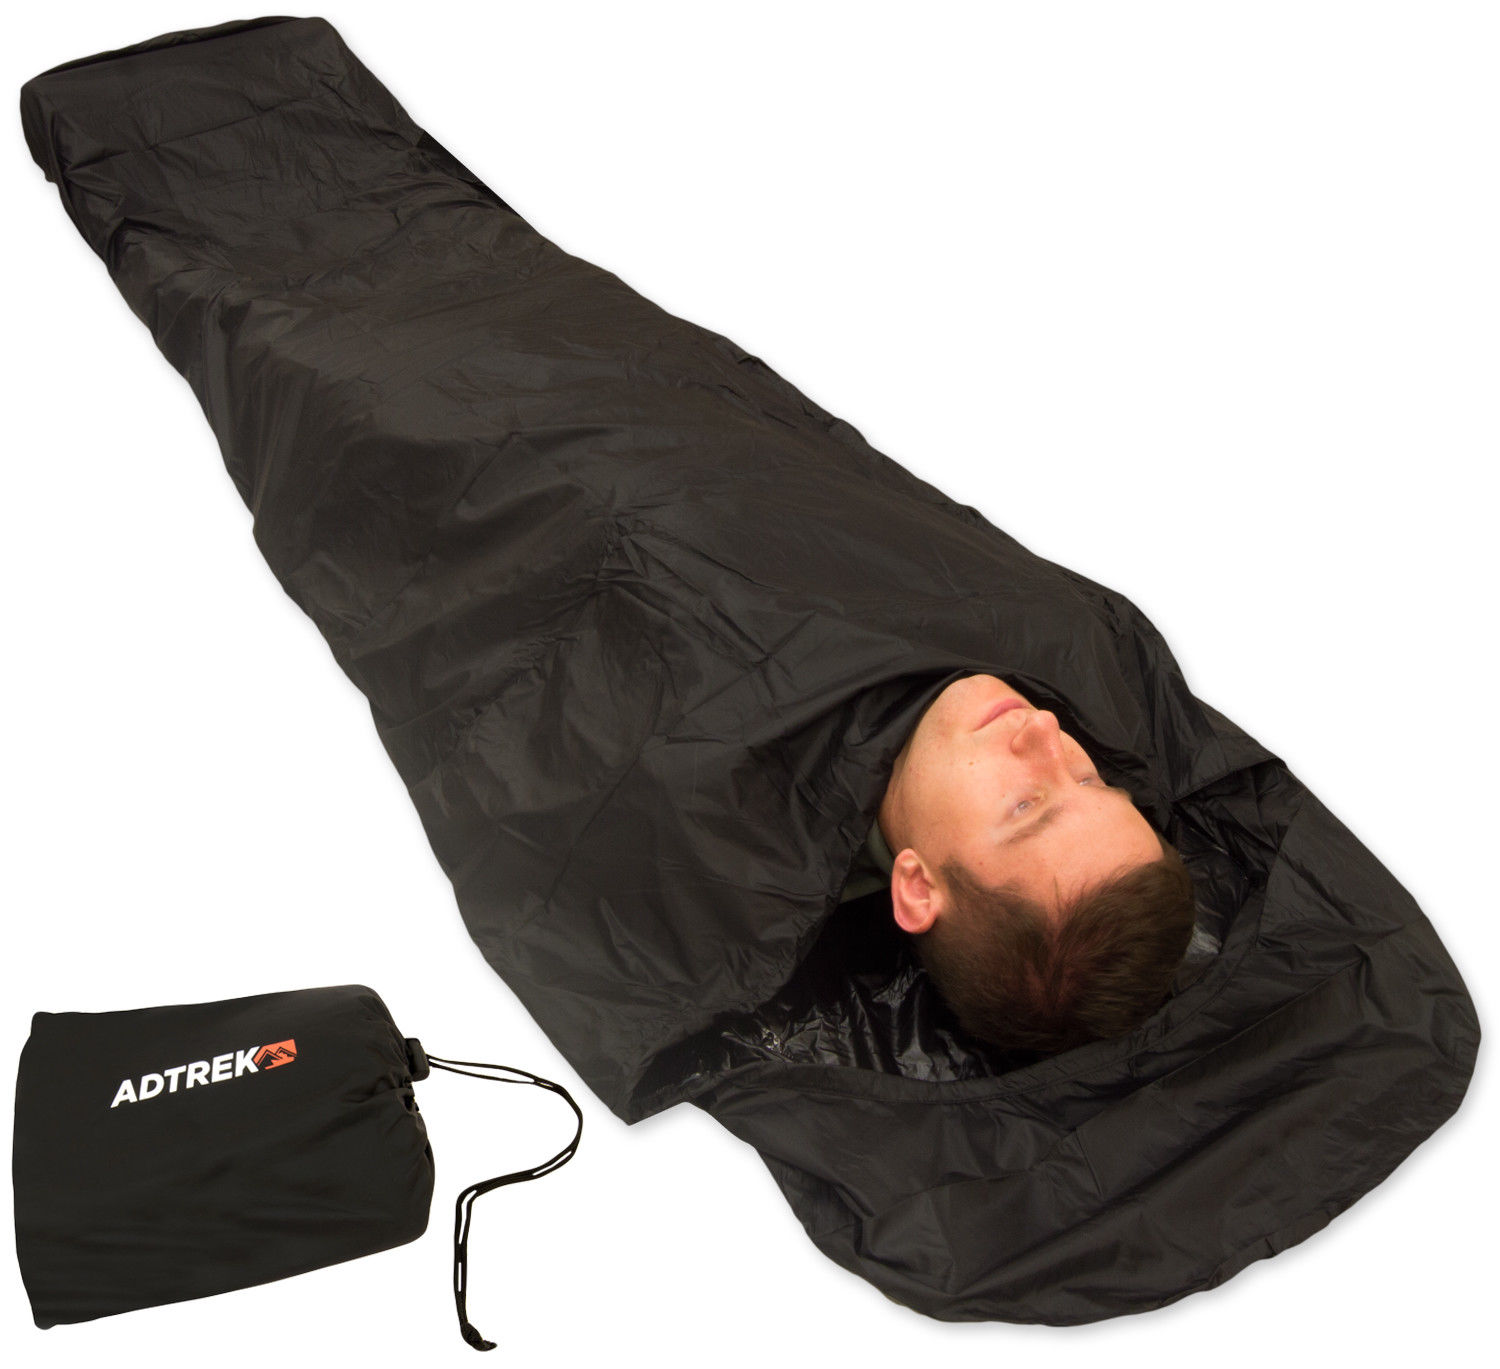 Details About Adtrek Camping Fishing Waterproof Sleeping Bag Bivvy Cover 290t With Zip